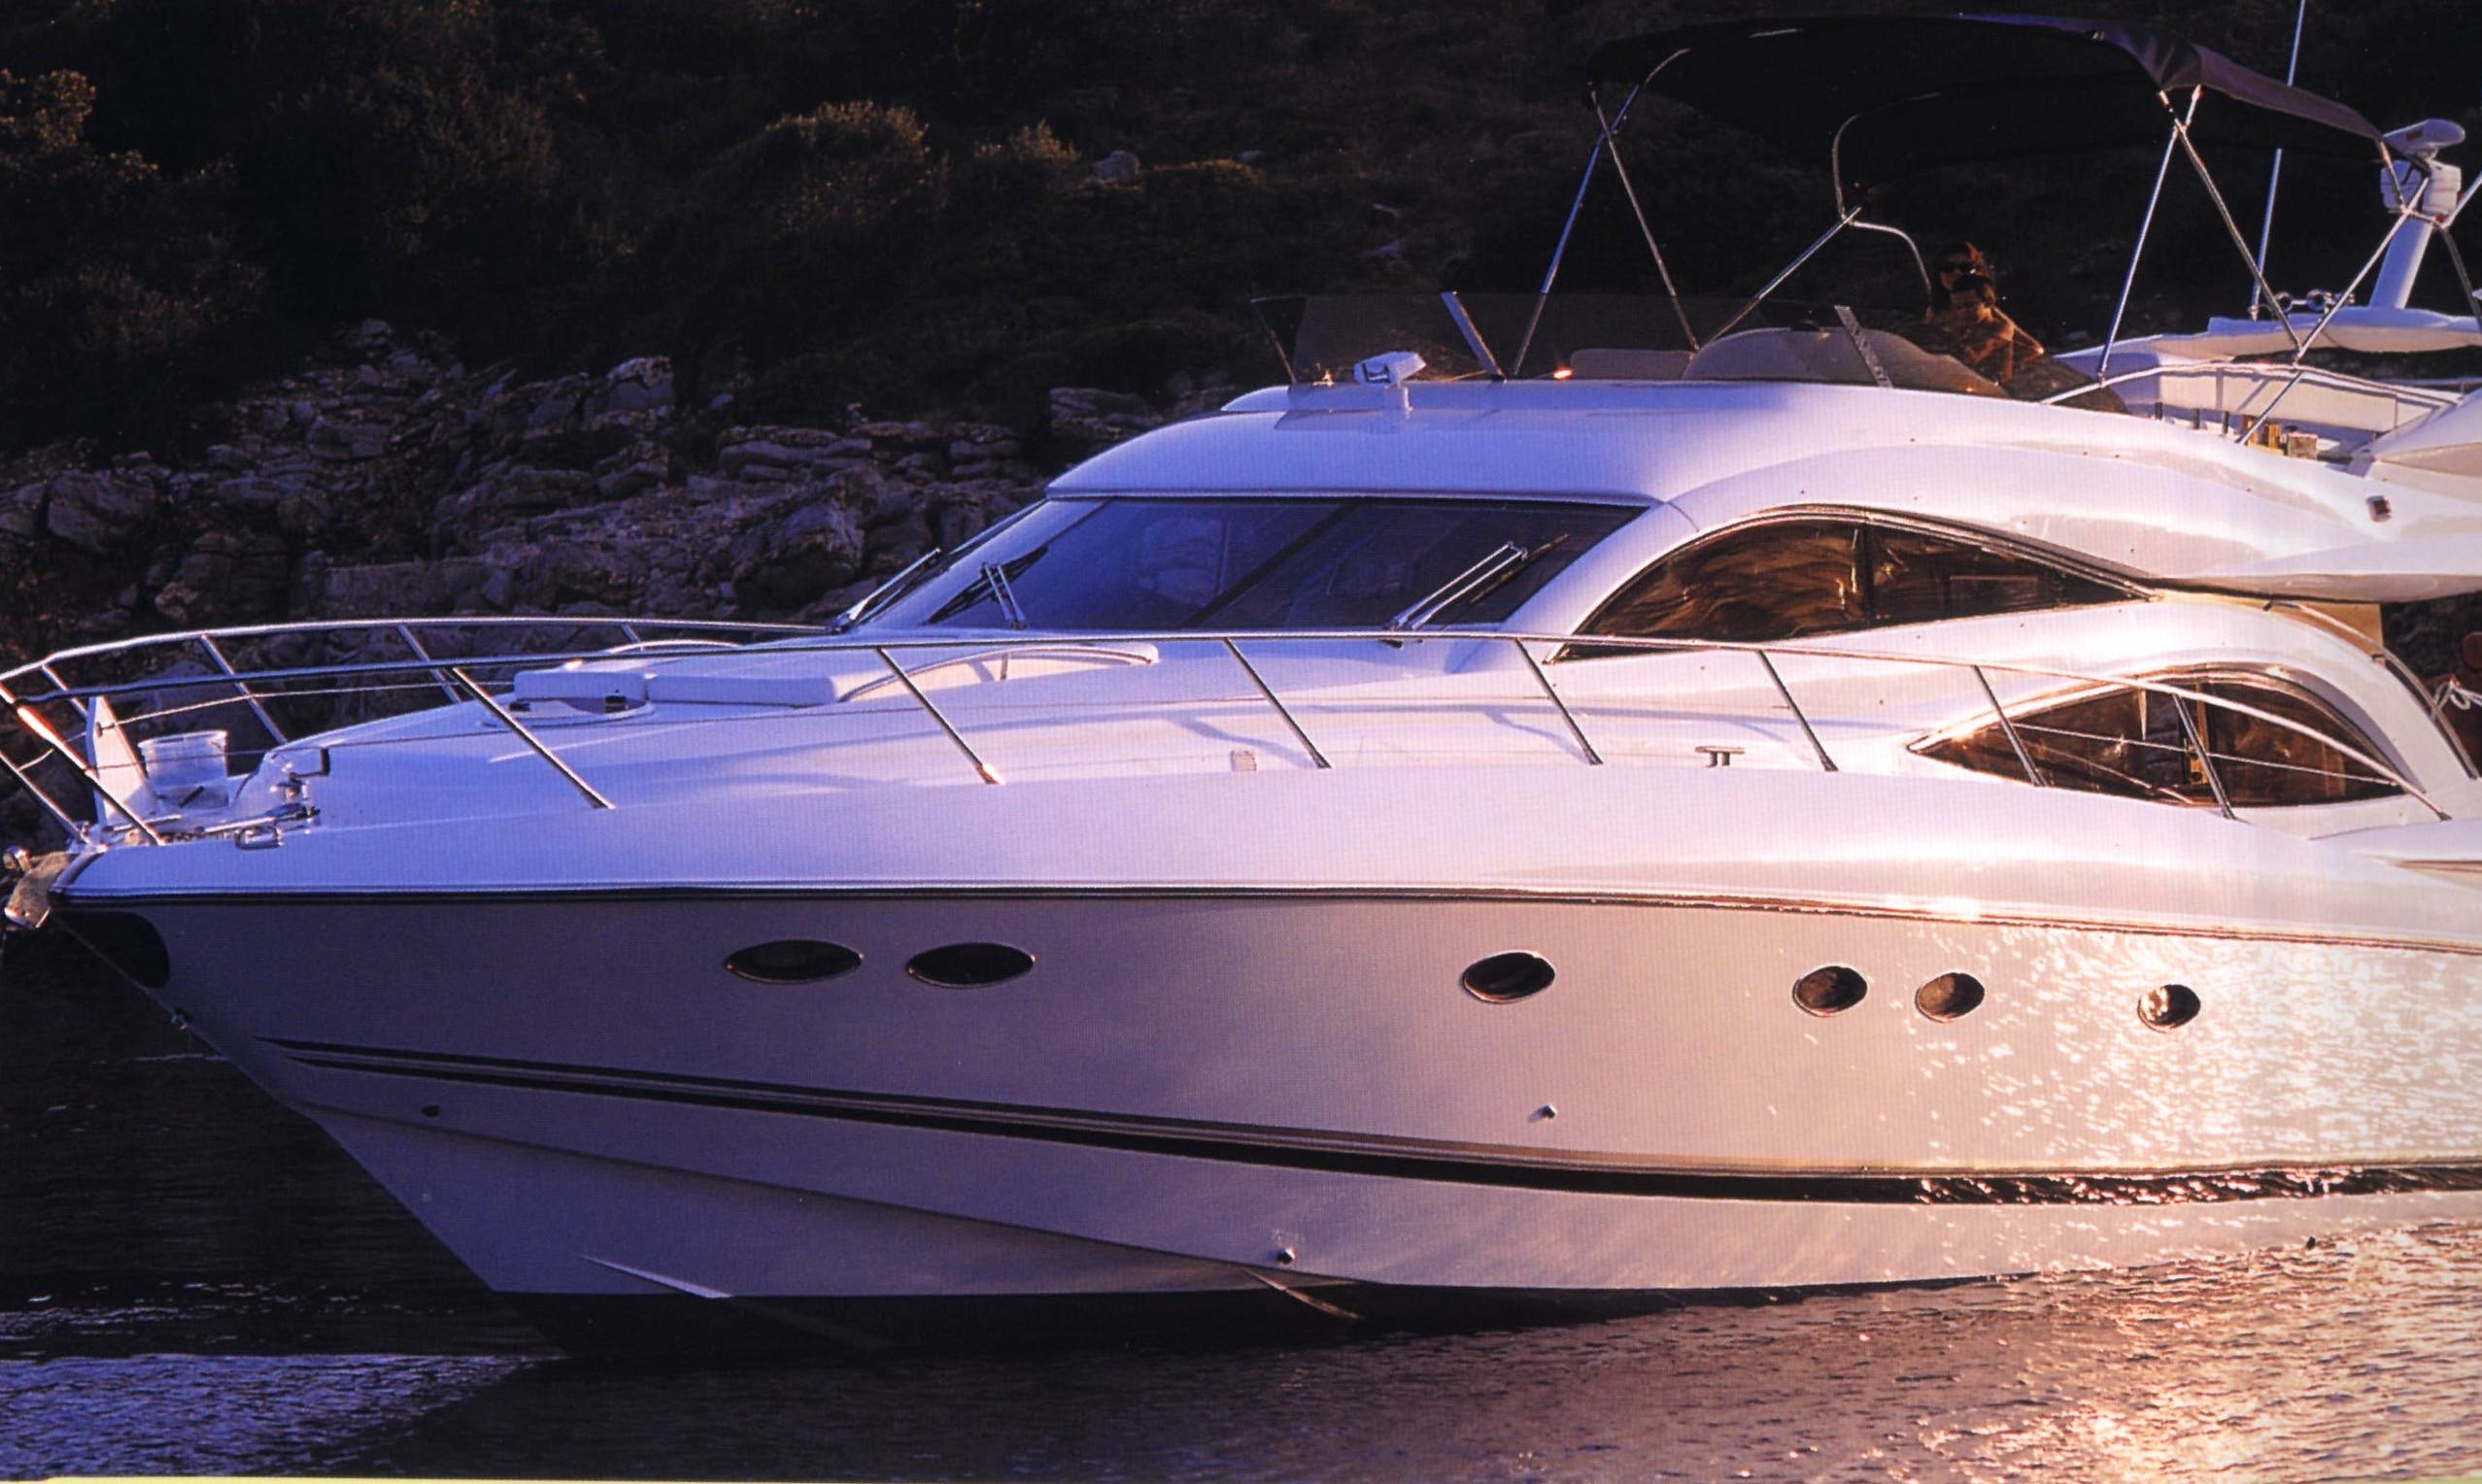 Sunseeker Manhattan 56 rental in Västerås